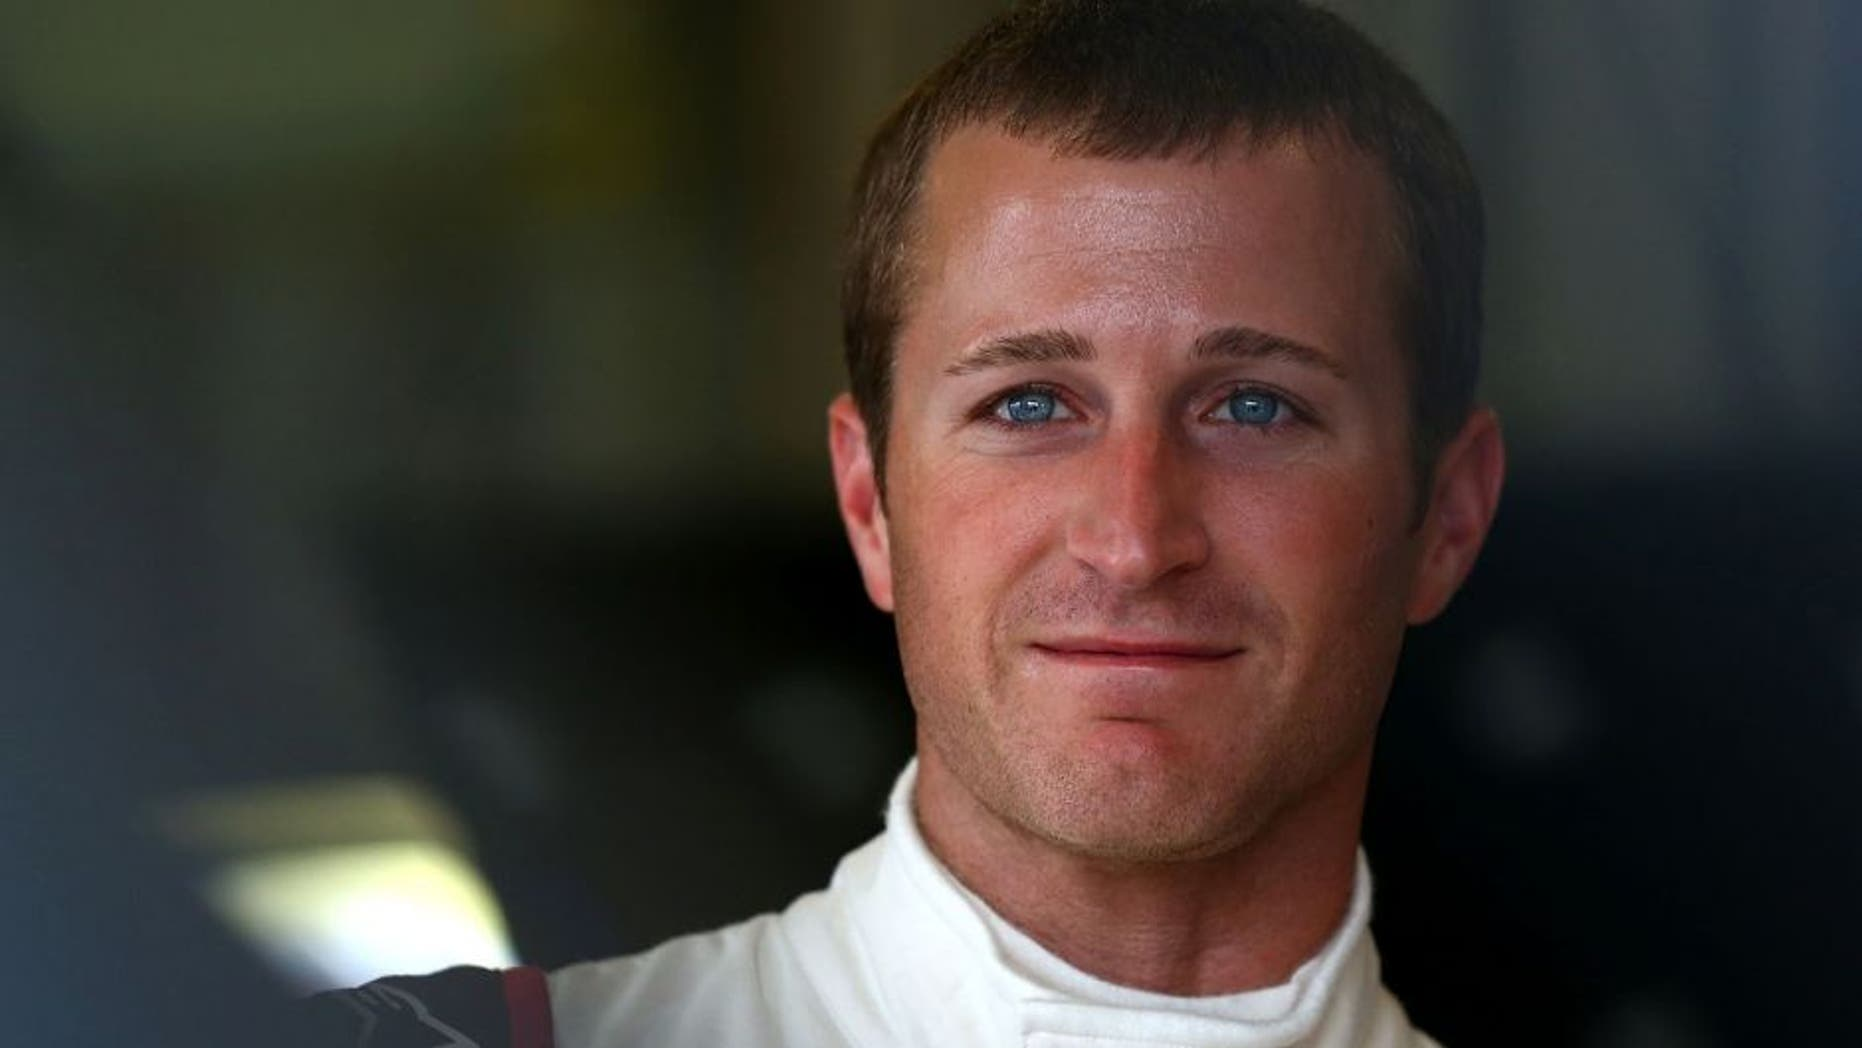 SPARTA, KY - JULY 08: Kasey Kahne, driver of the #5 Liftmaster Chevrolet, looks on before the NASCAR Sprint Cup Series Test at Kentucky Speedway on July 8, 2015 in Sparta, Kentucky. (Photo by Sarah Crabill/NASCAR via Getty Images)